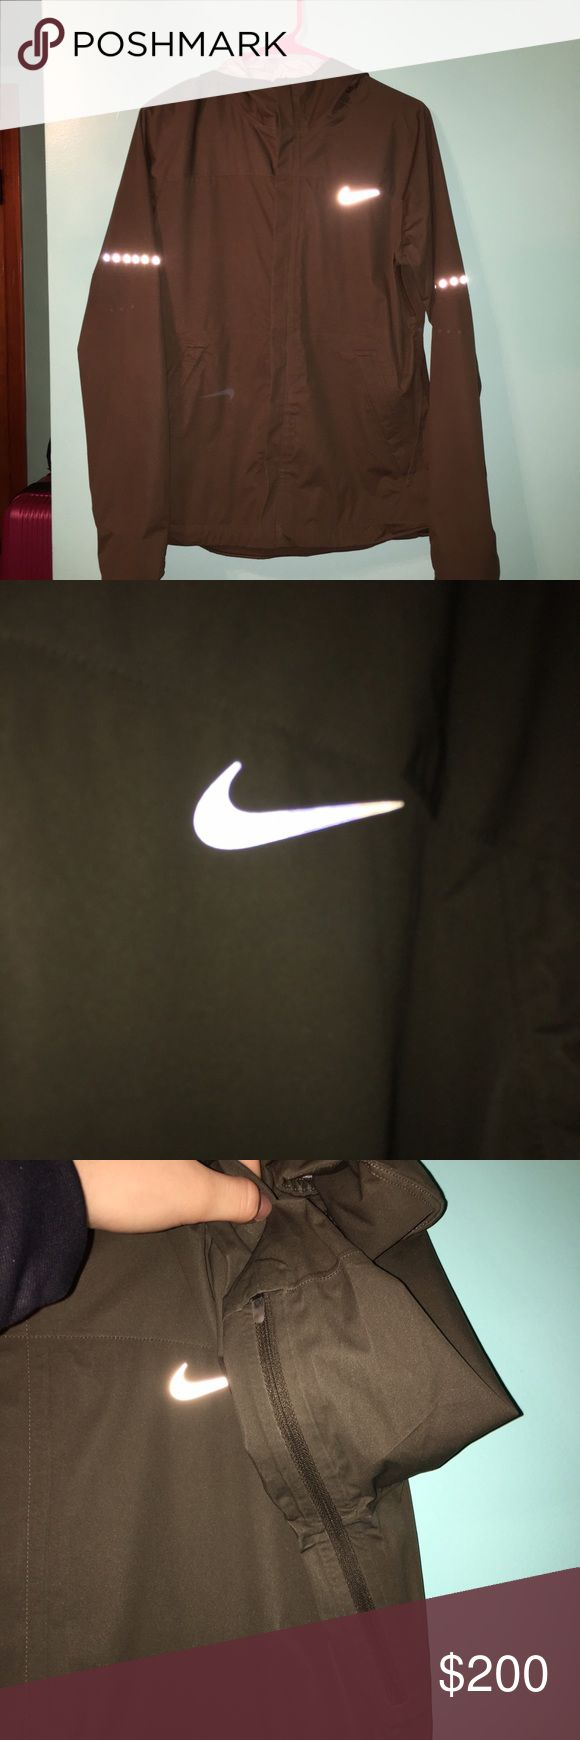 Women's Nike Jacket Medium Women's Nike Waterproof JacketSize Medium. This jacket is waterproof and wind proof! Like new! Nike Jackets & Coats Trench Coats